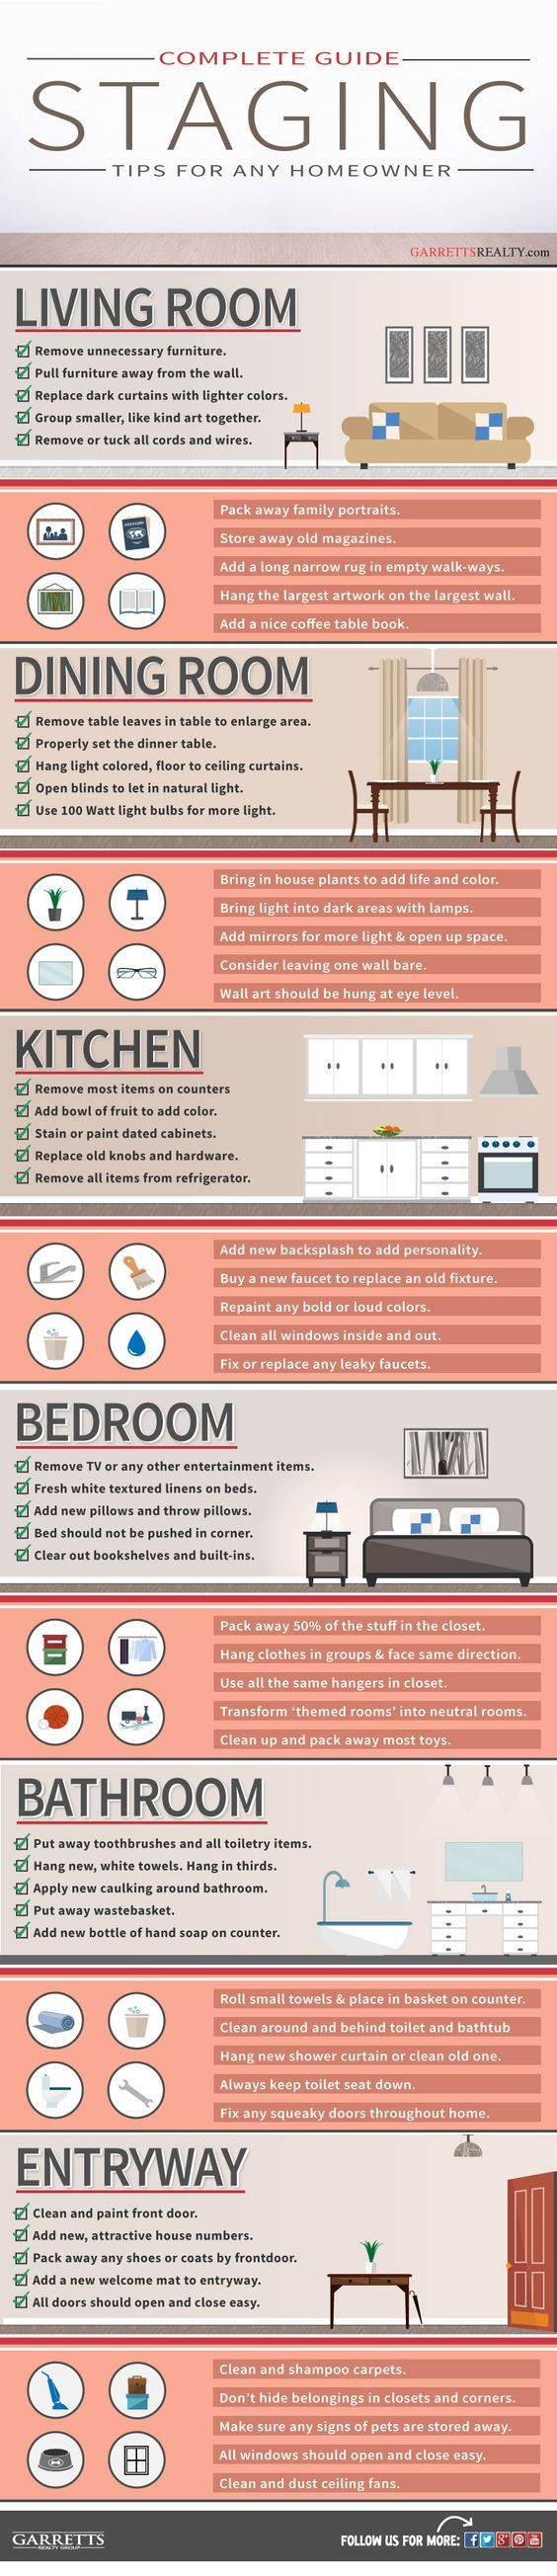 60 different tips to follow when staging a home for sale - Infographic. Staging your home helps in speeding up the sale as well as put some extra dollars. #home #decor #realestate